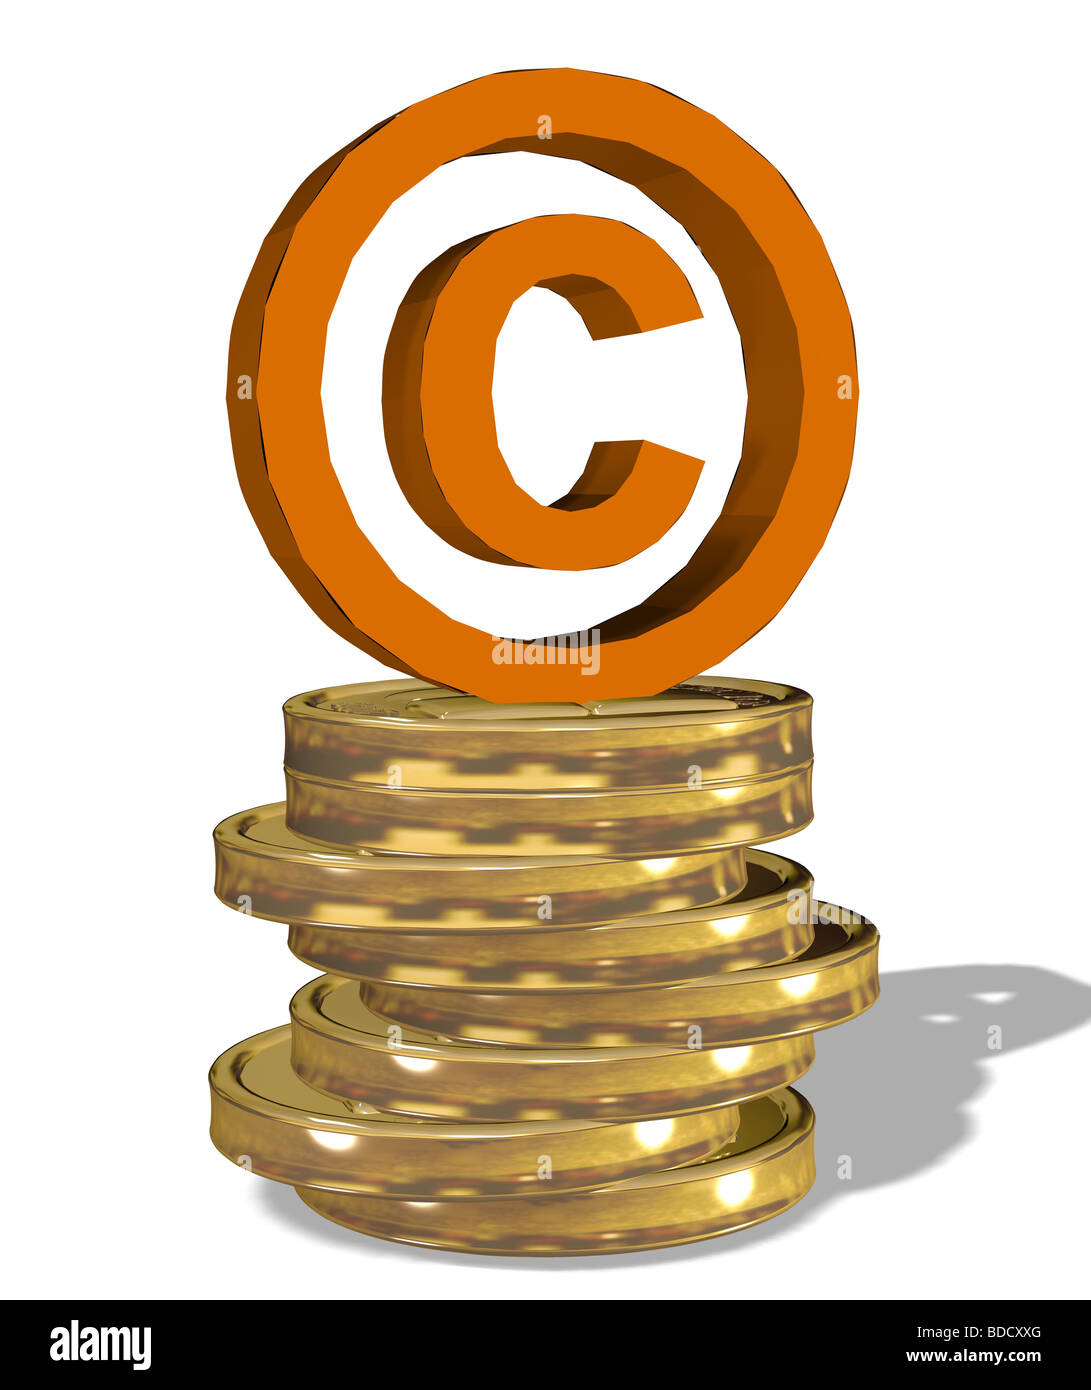 copyright sign on a stack of coins - Stock Image